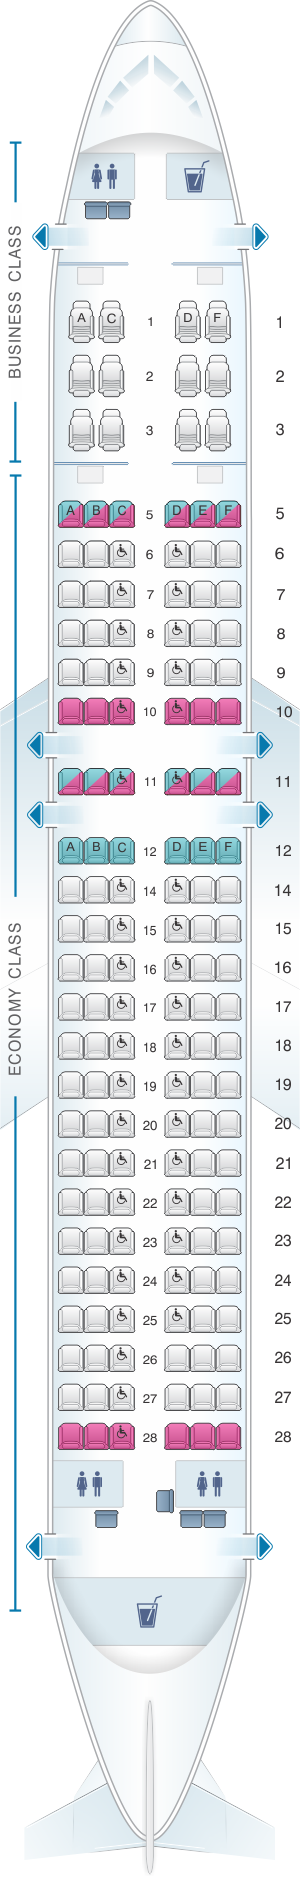 Seat Map Srilankan Airlines Airbus A320 Config 1